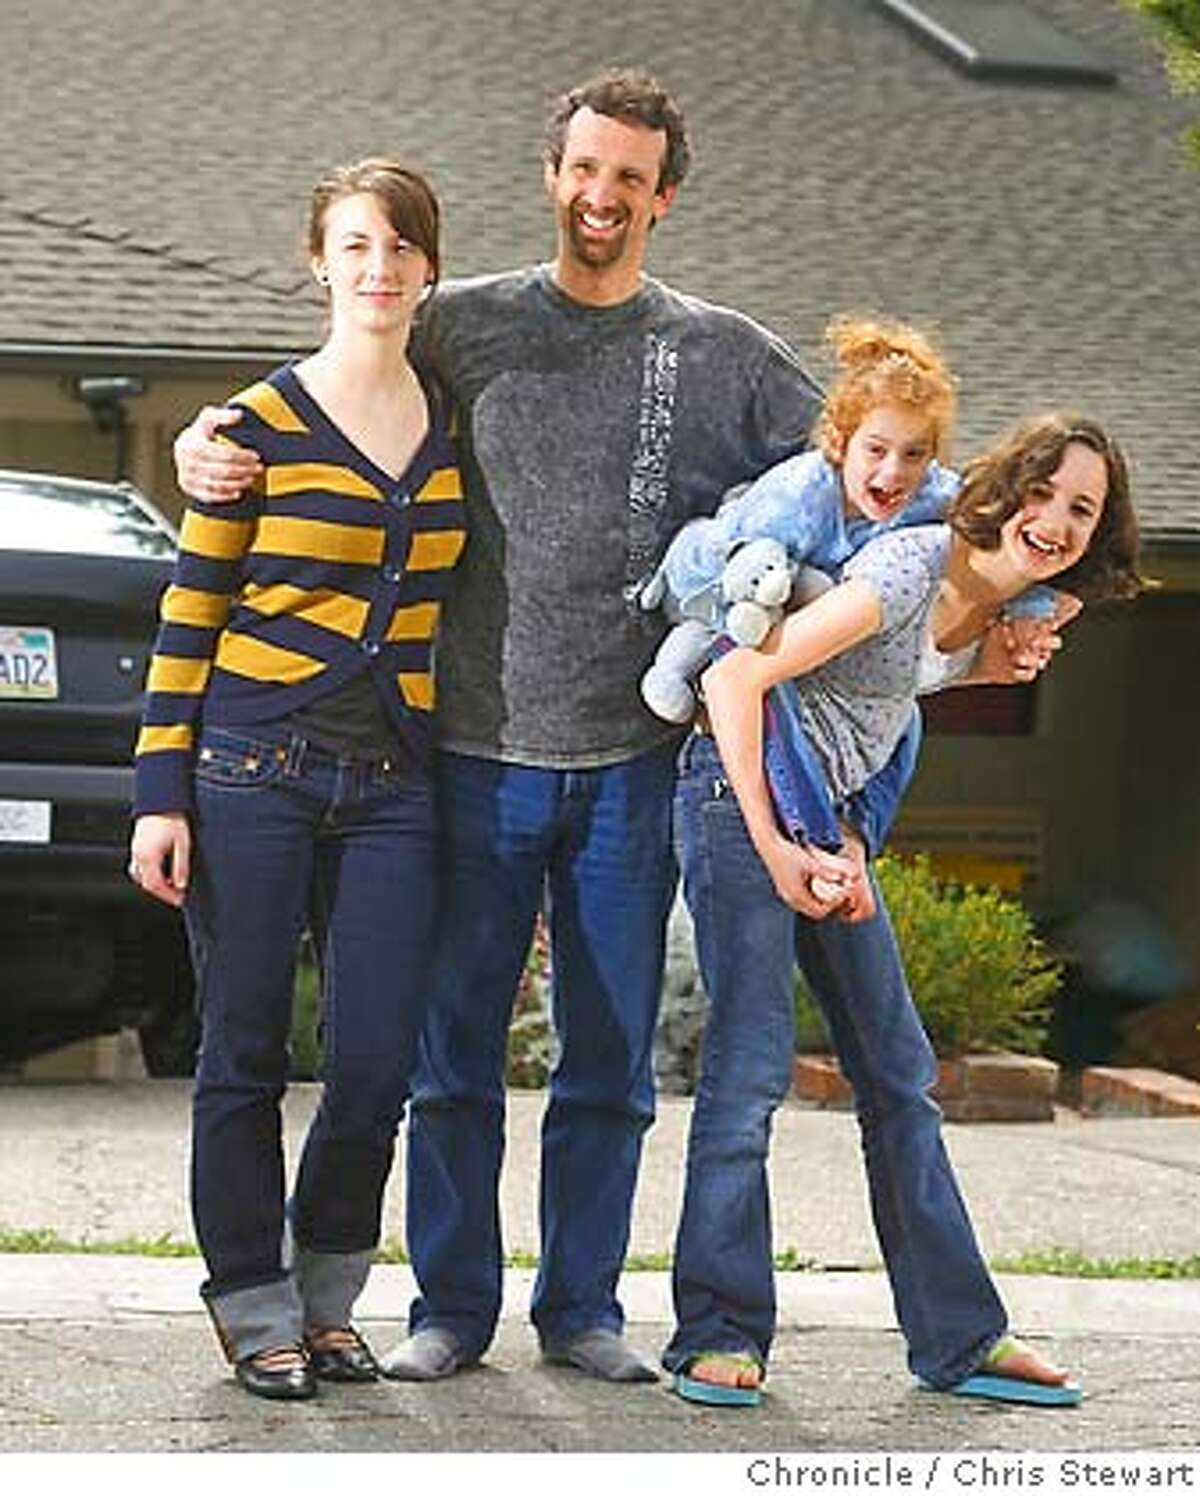 mrdad00118_mk.JPG Armin Brott with his three daughters (left-rt) Tifzah Brott, 17, Zoe Brott, 4, and Talya Brott, 13, is an Oakland based writer known to many as Mr. Dad by many for his many books on fatherhood. 4/7/07. Mike Kepka / The Chronicle Armin Brott Tifzah Brott Zoe Brott Talya Brott, (cq) the source